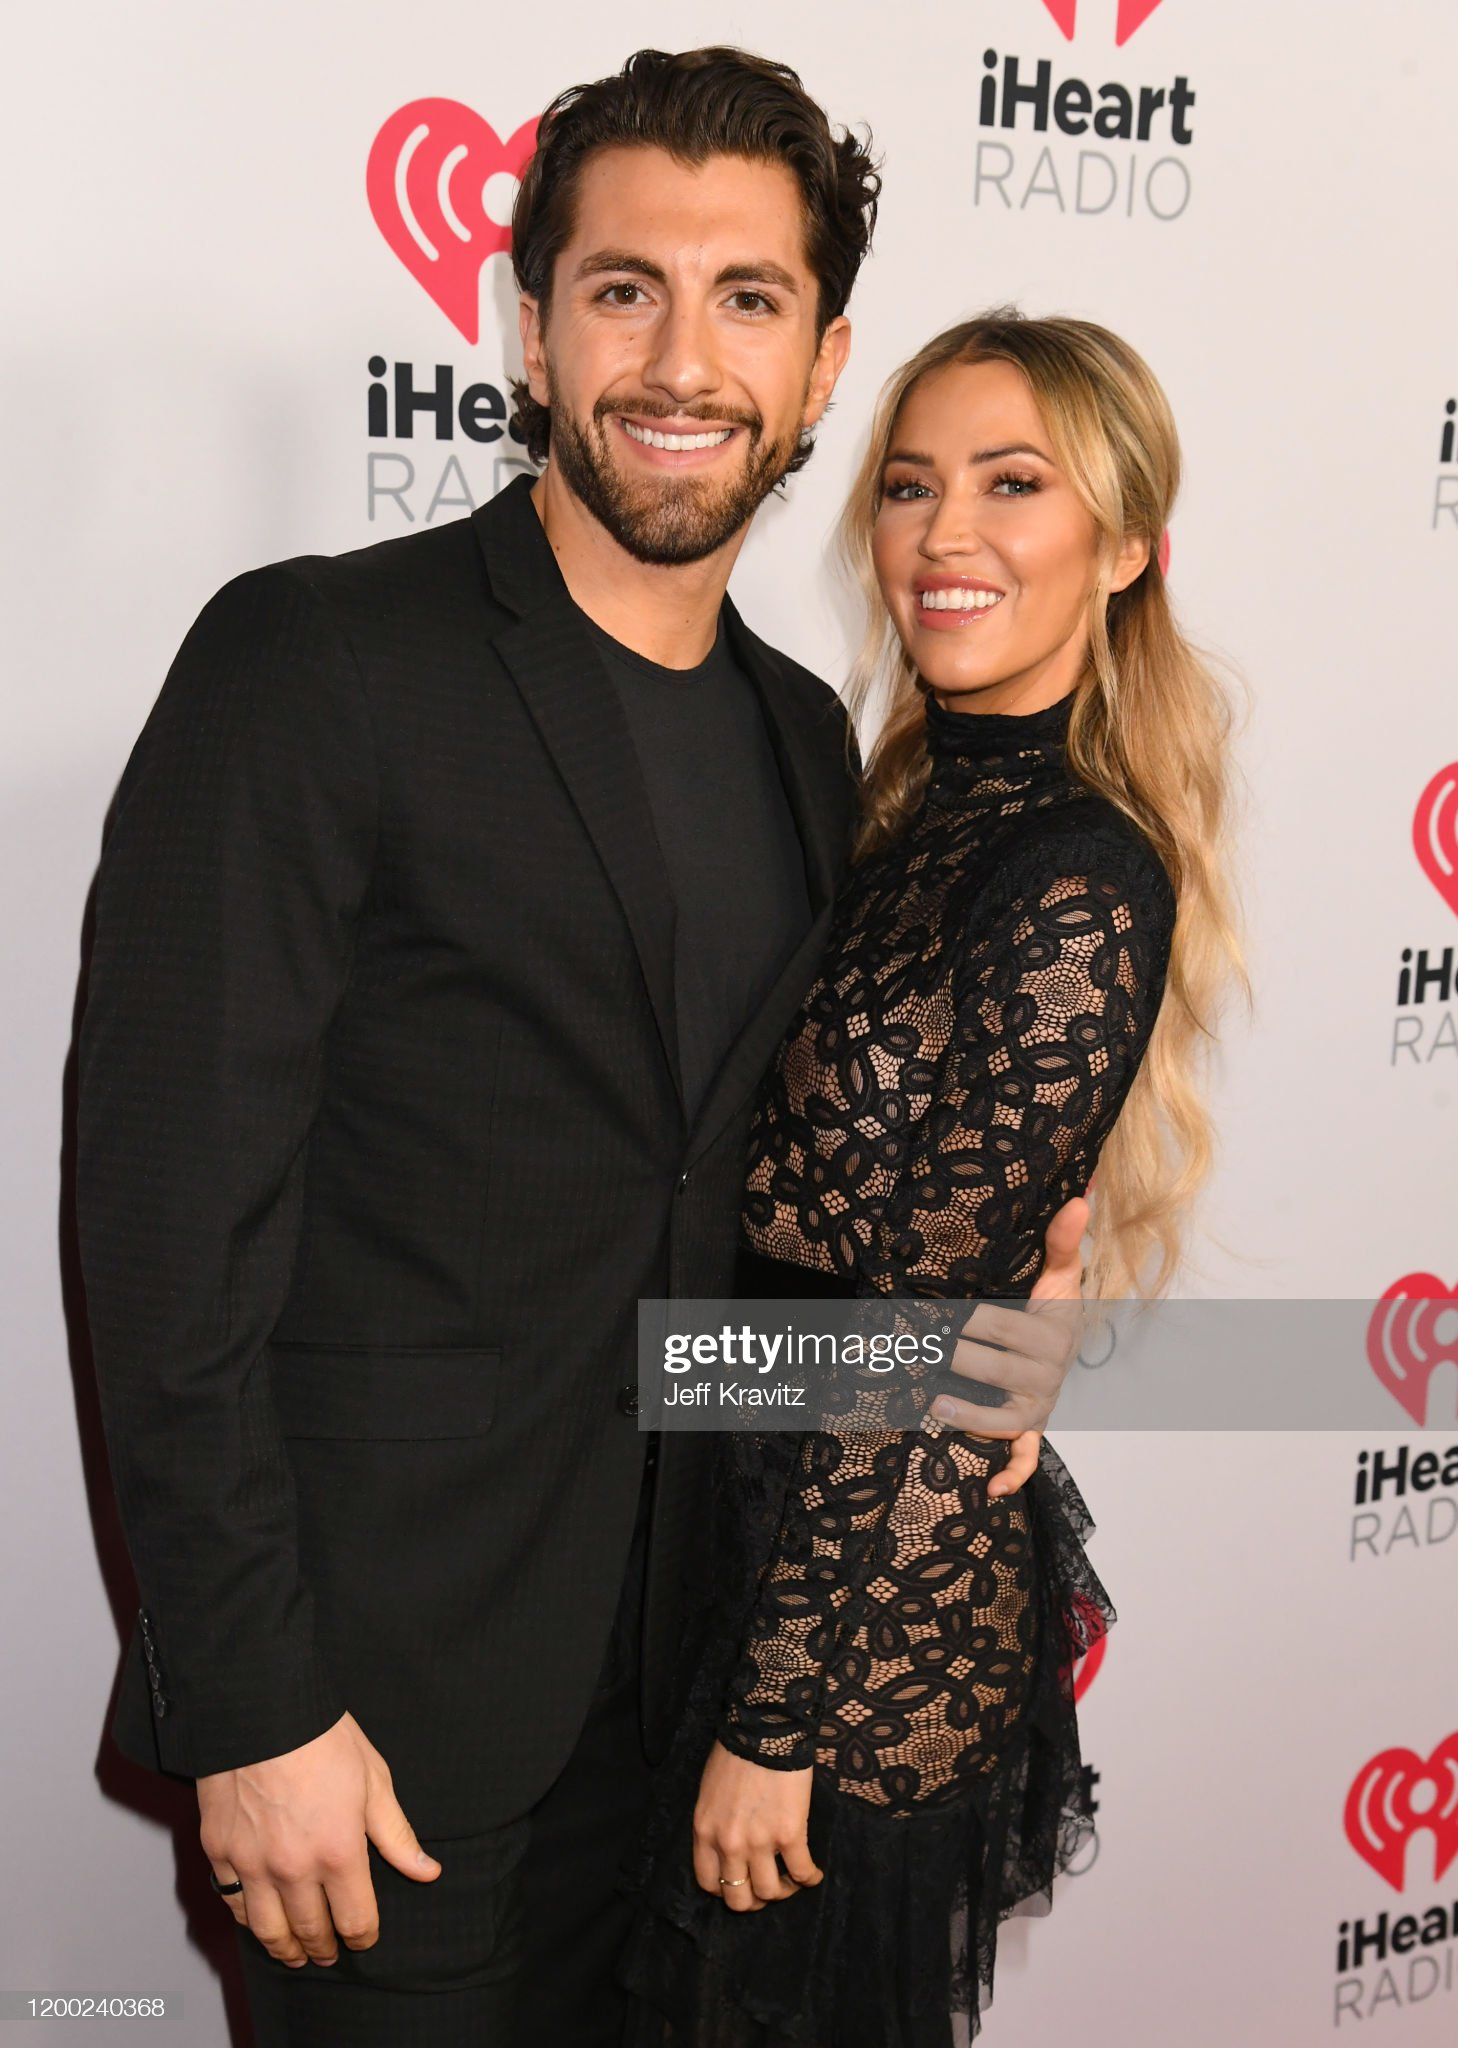 Kaitlyn Bristowe - Jason Tartick - FAN Forum - Discussion  - Page 51 Jason-tartick-and-kaitlyn-bristowe-attend-the-2020-iheartradio-at-picture-id1200240368?s=2048x2048